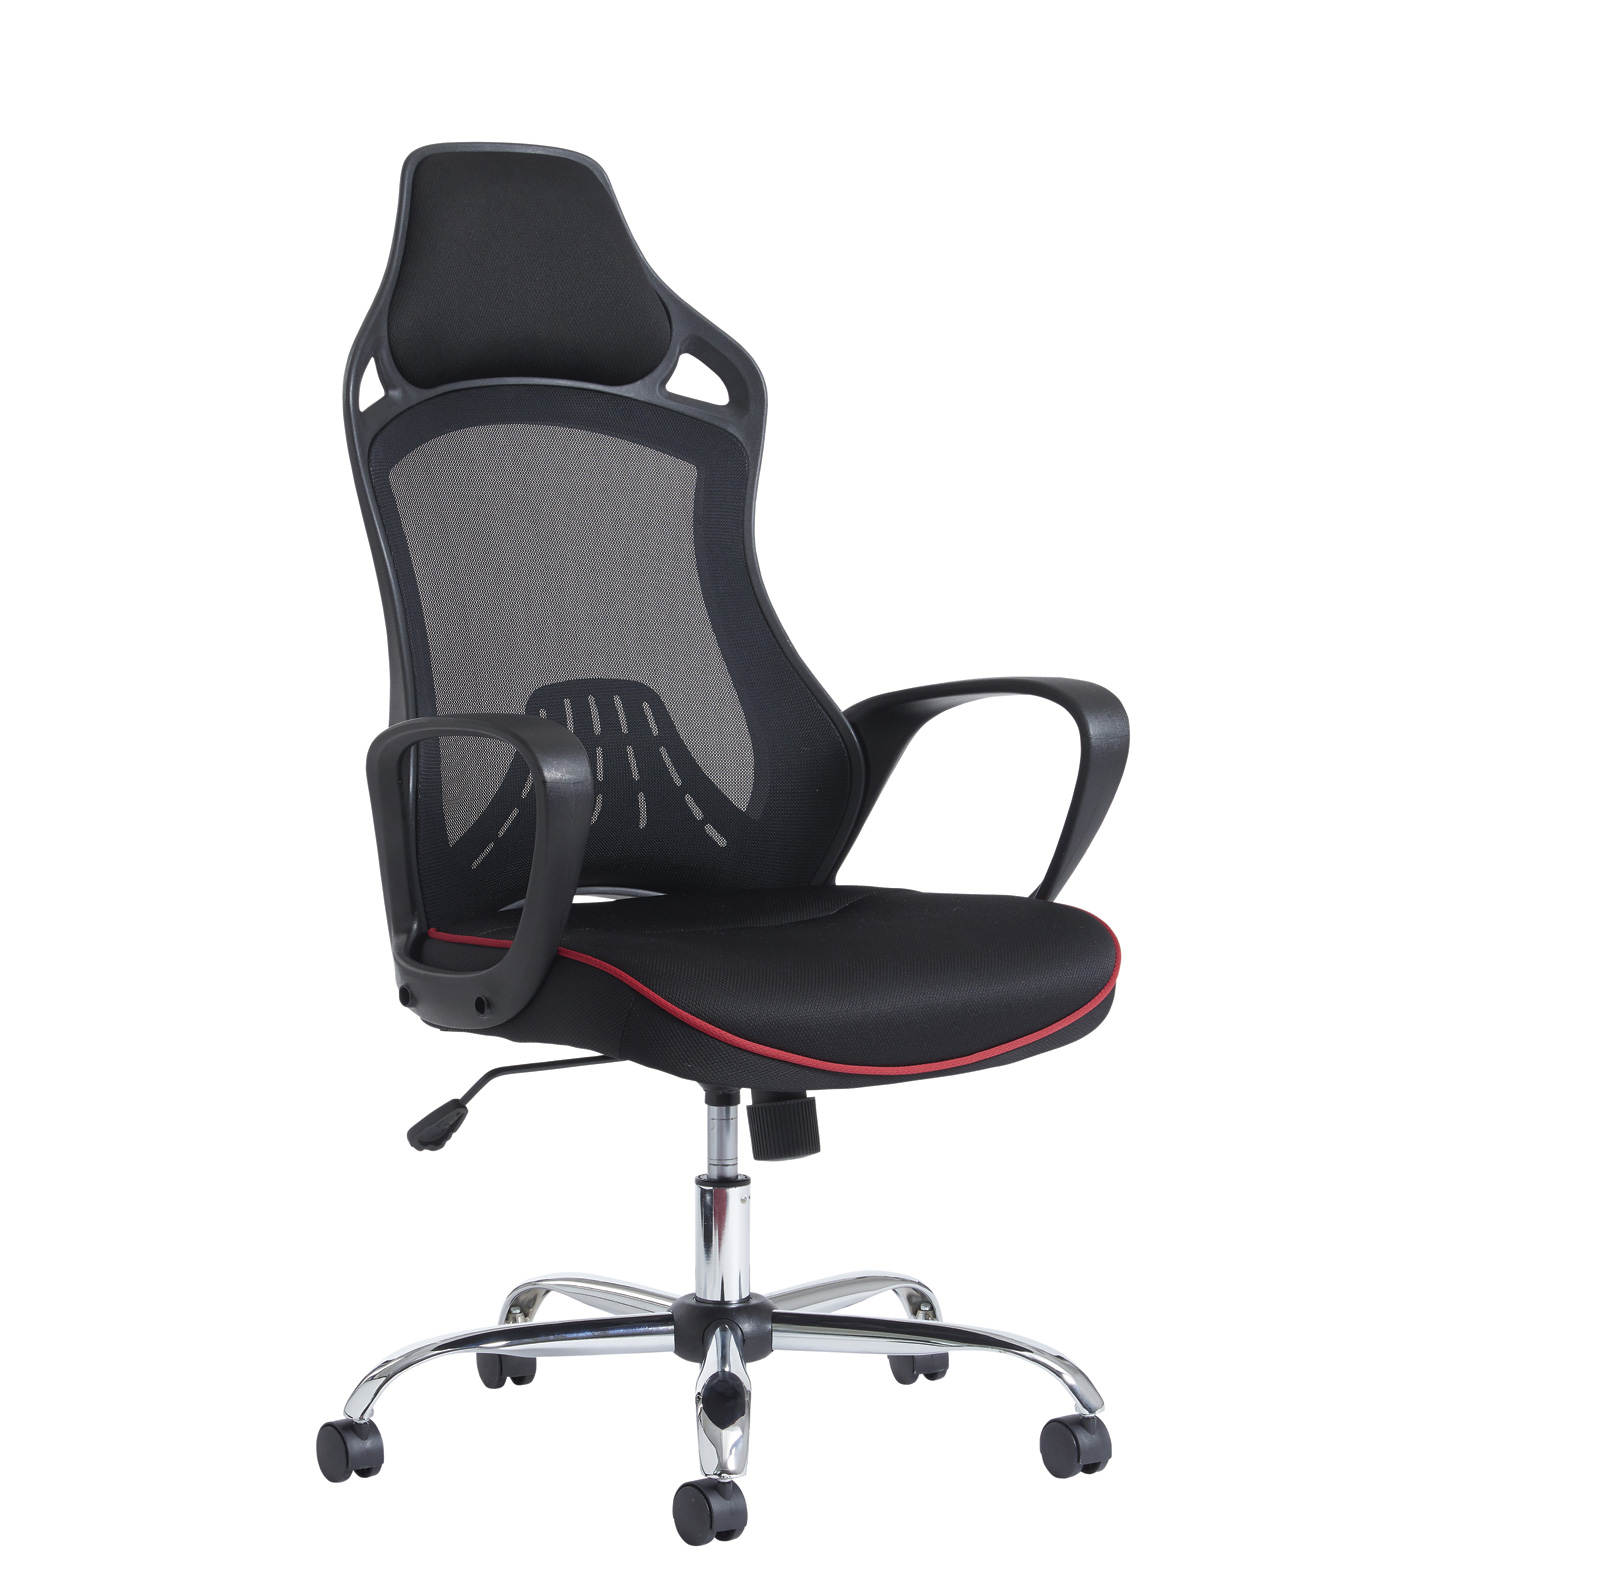 Andretti mesh back chair - black